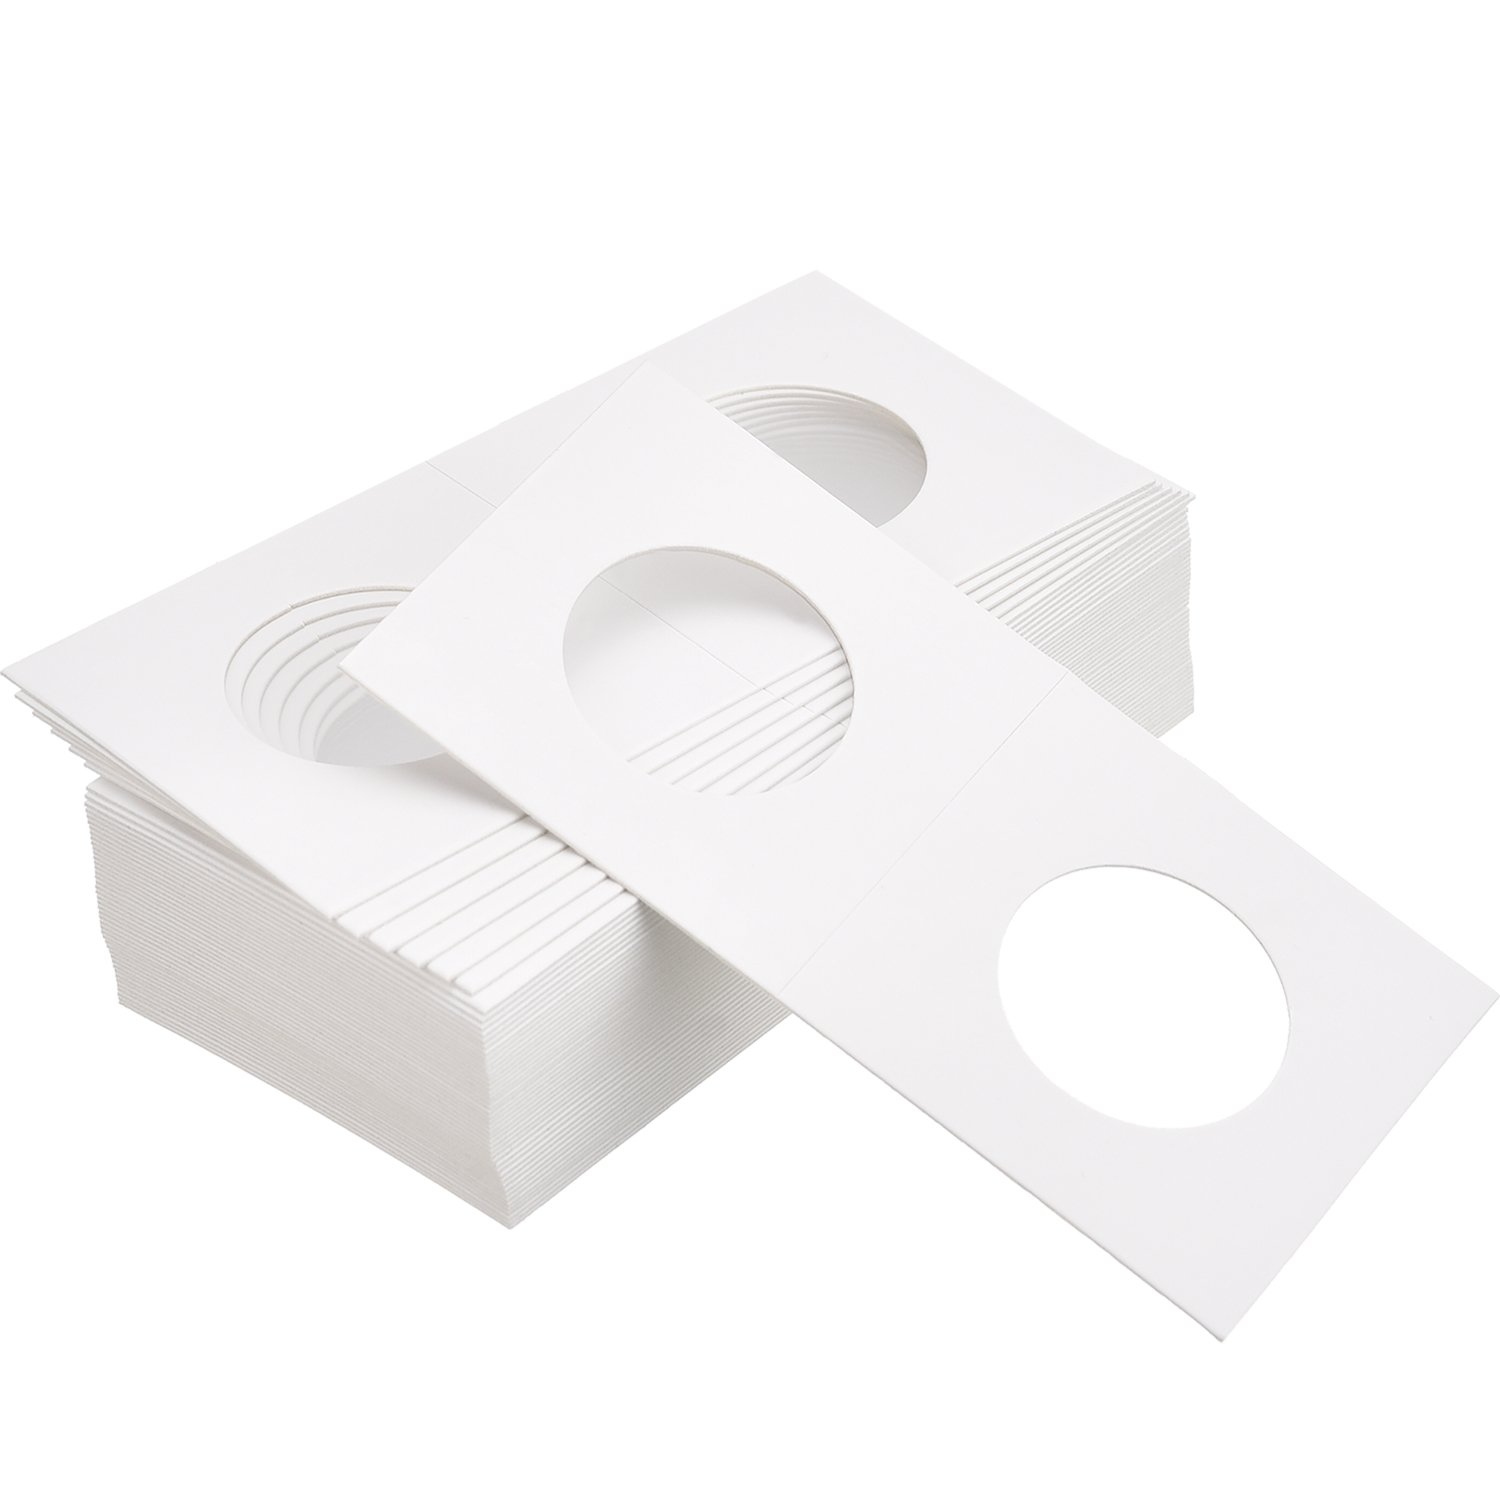 Hicarer 300 Pieces Cardboard Coin Holder Flip Mega Assortment, 2 by 2 Inch for Coin Collection Supplies (6 Sizes) by Hicarer (Image #6)